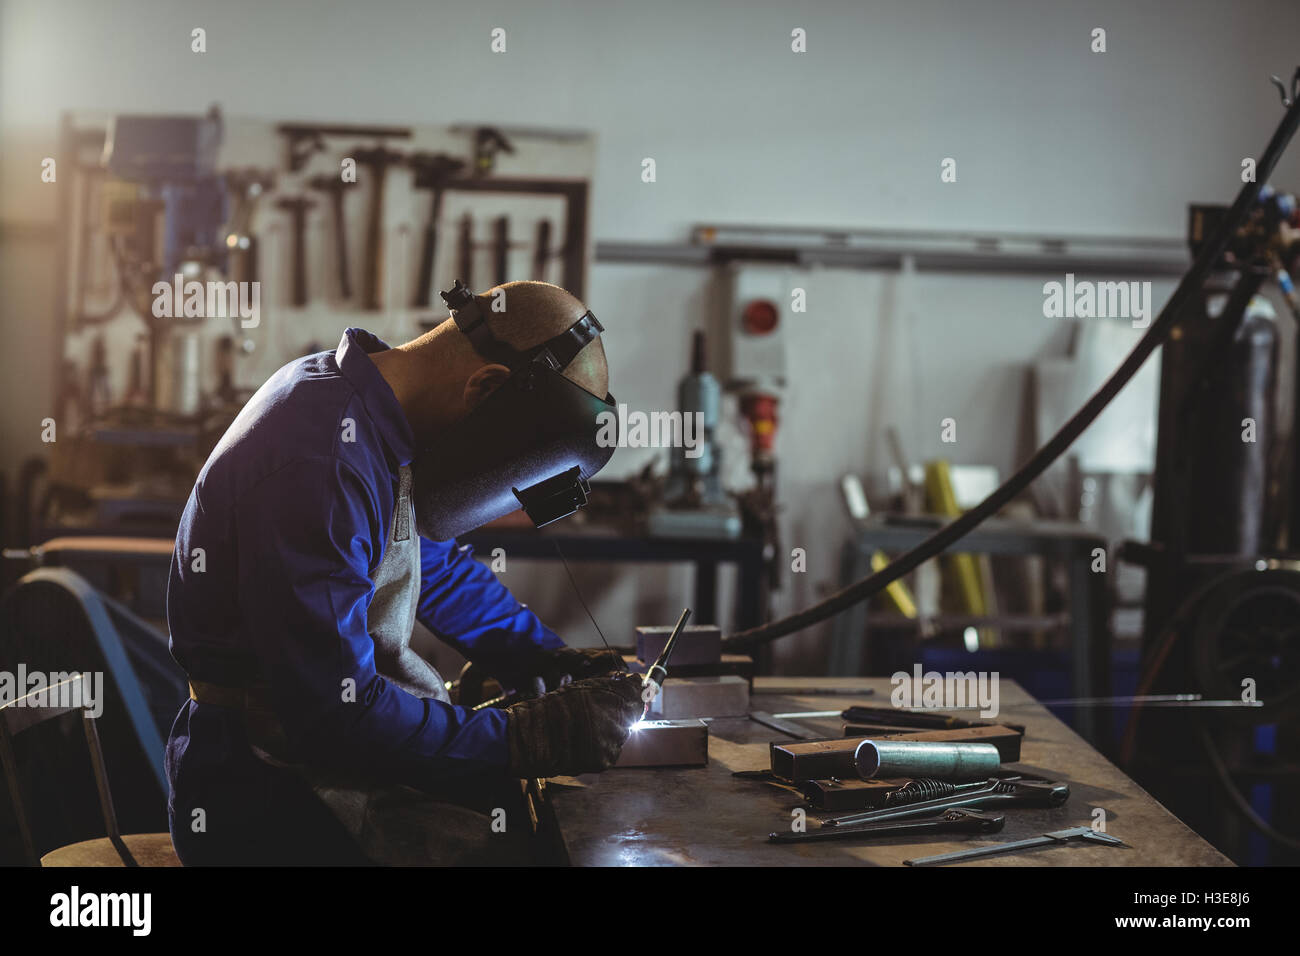 Male welder working on a piece of metal Stock Photo